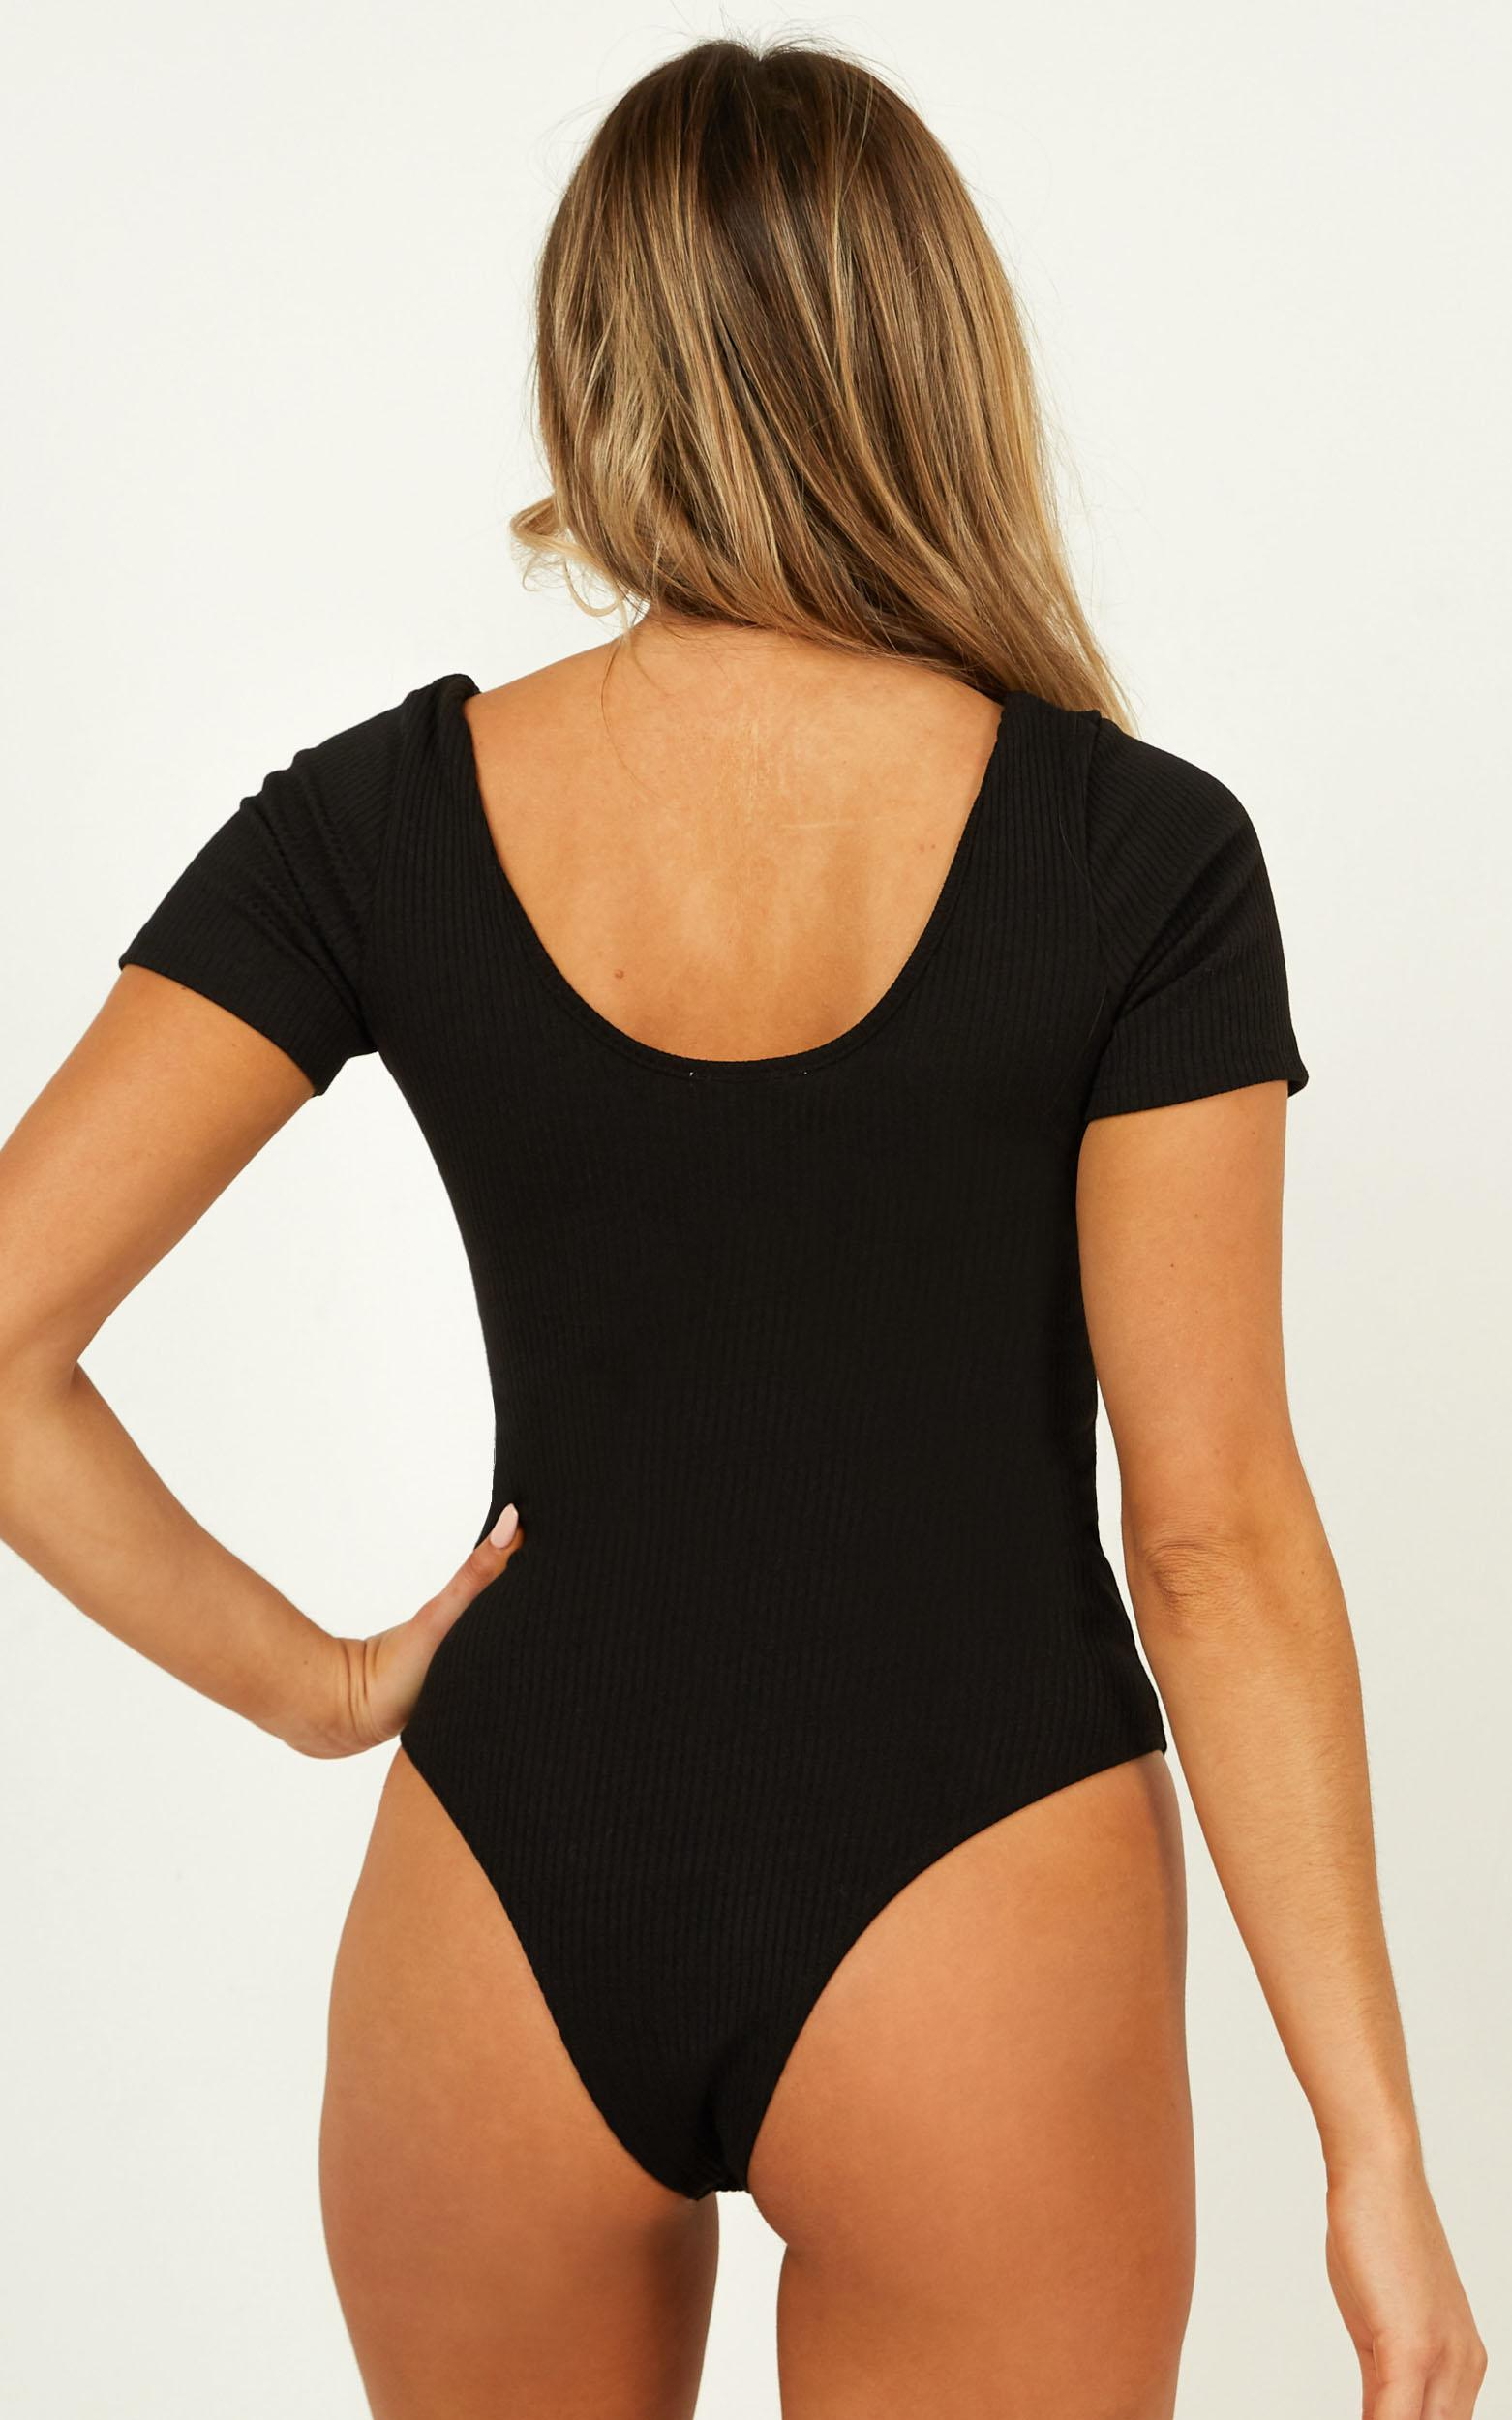 Night On The Town Bodysuit in black - 20 (XXXXL), Black, hi-res image number null